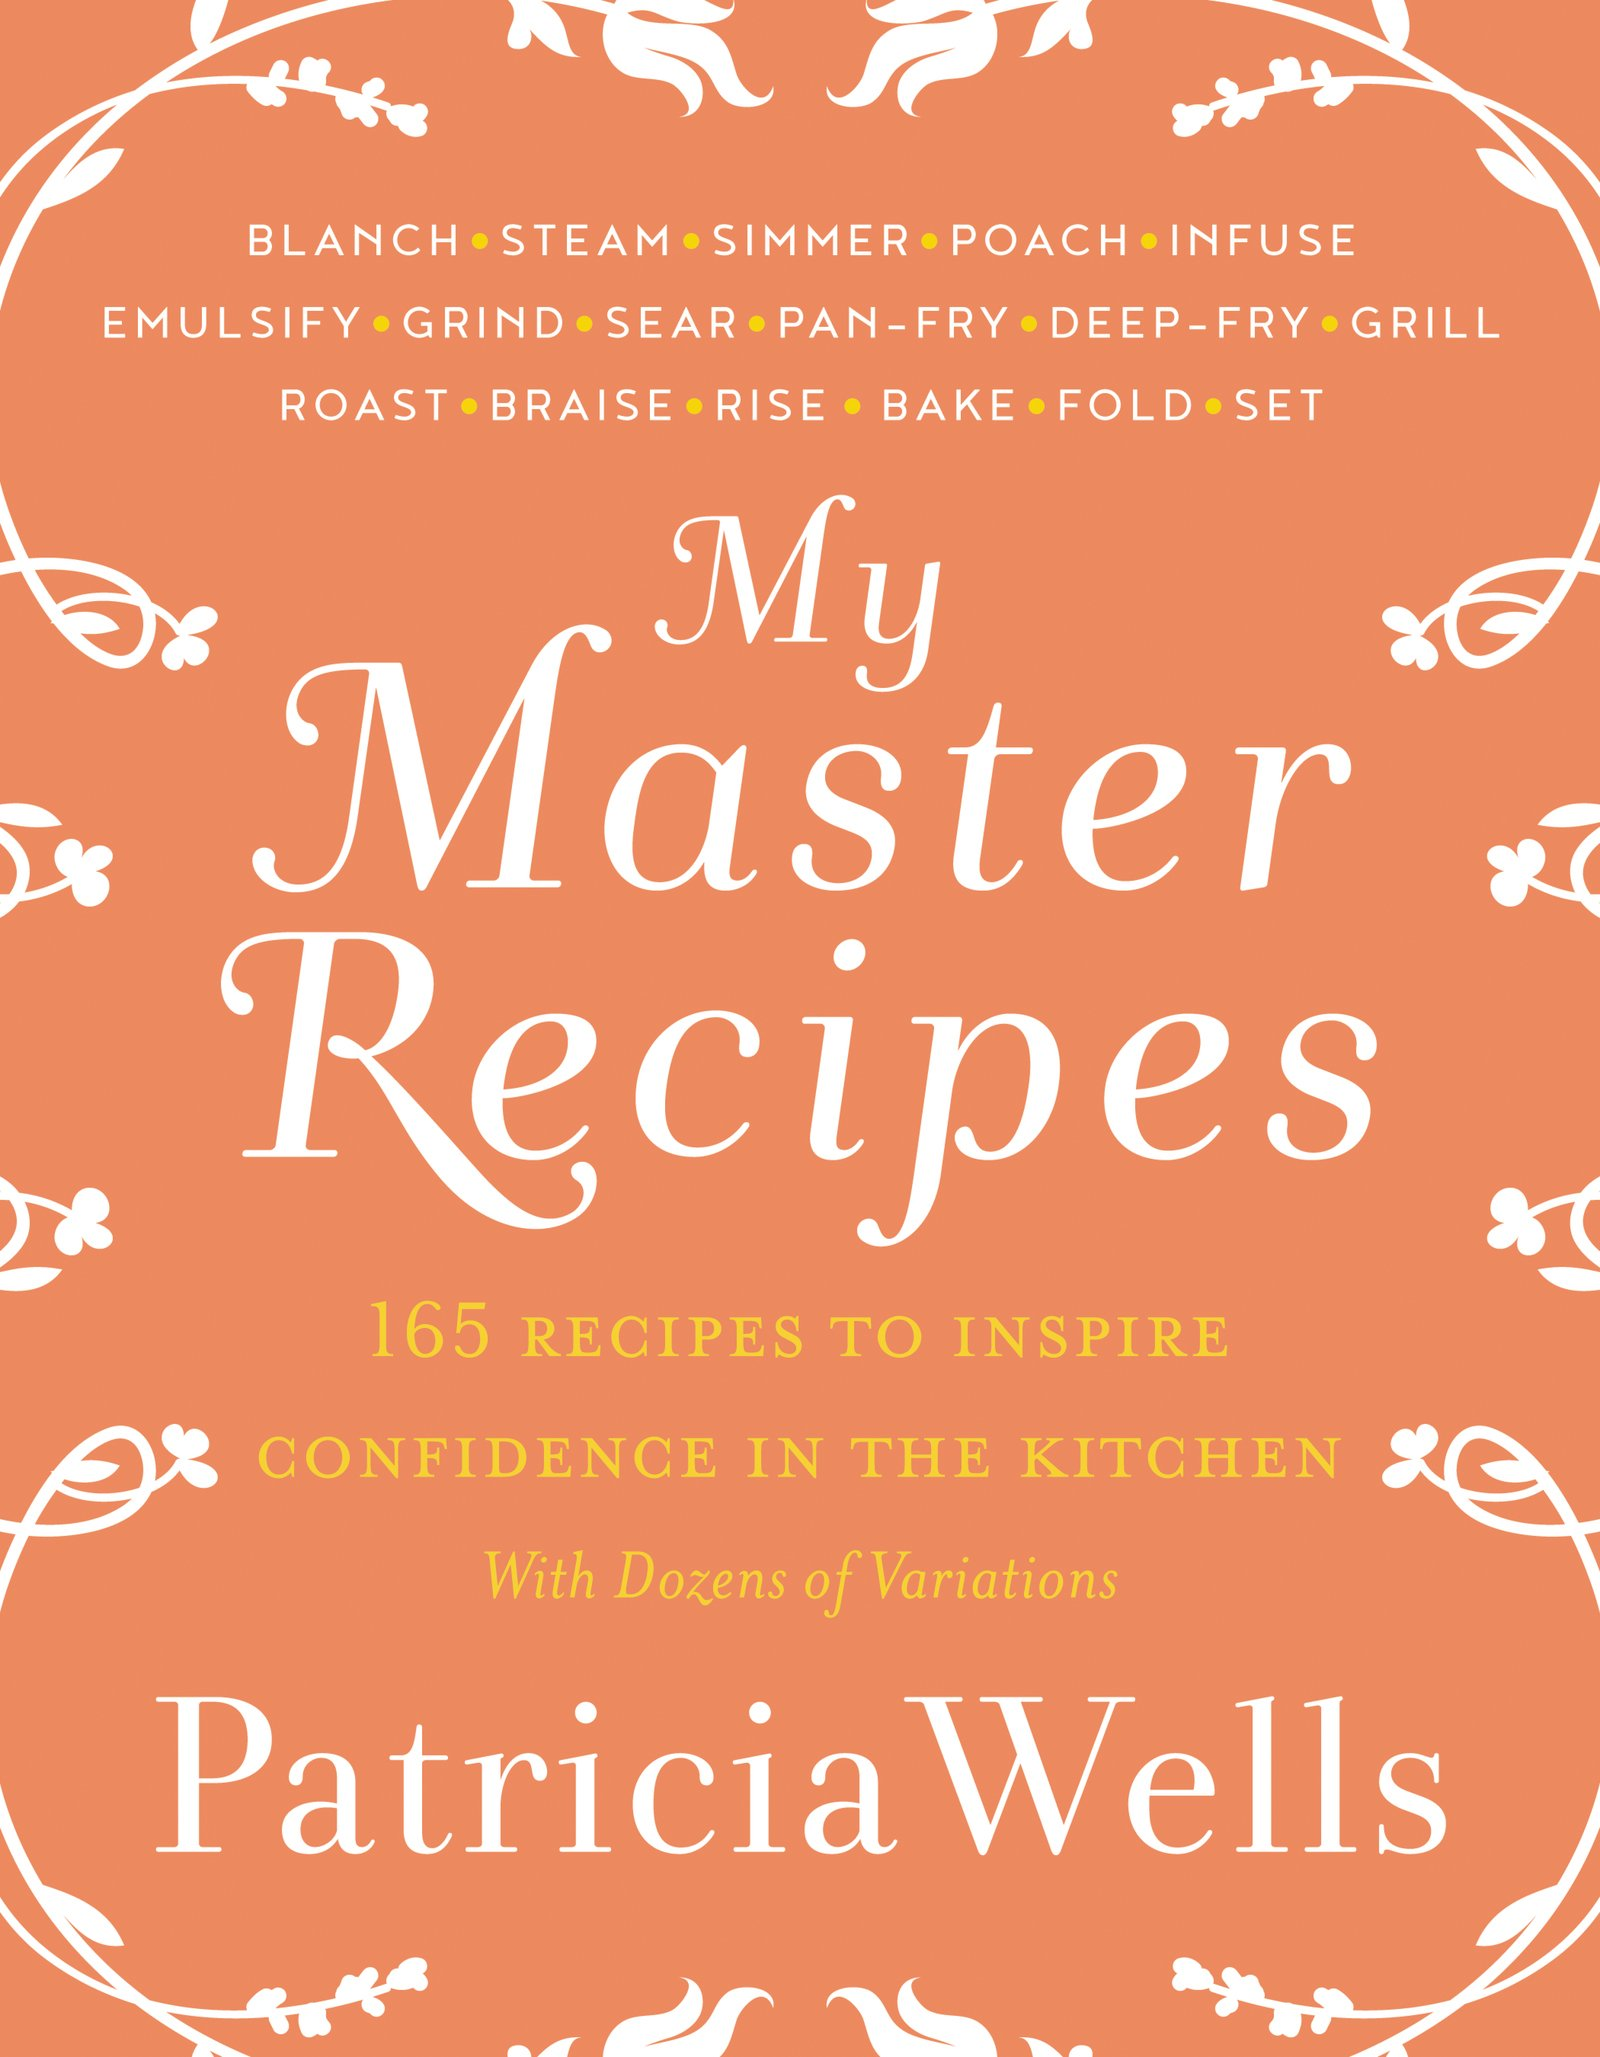 My Master Recipes: 165 Recipes to Inspire Confidence in the Kitchen *With Dozens of Variations By Patricia Wells